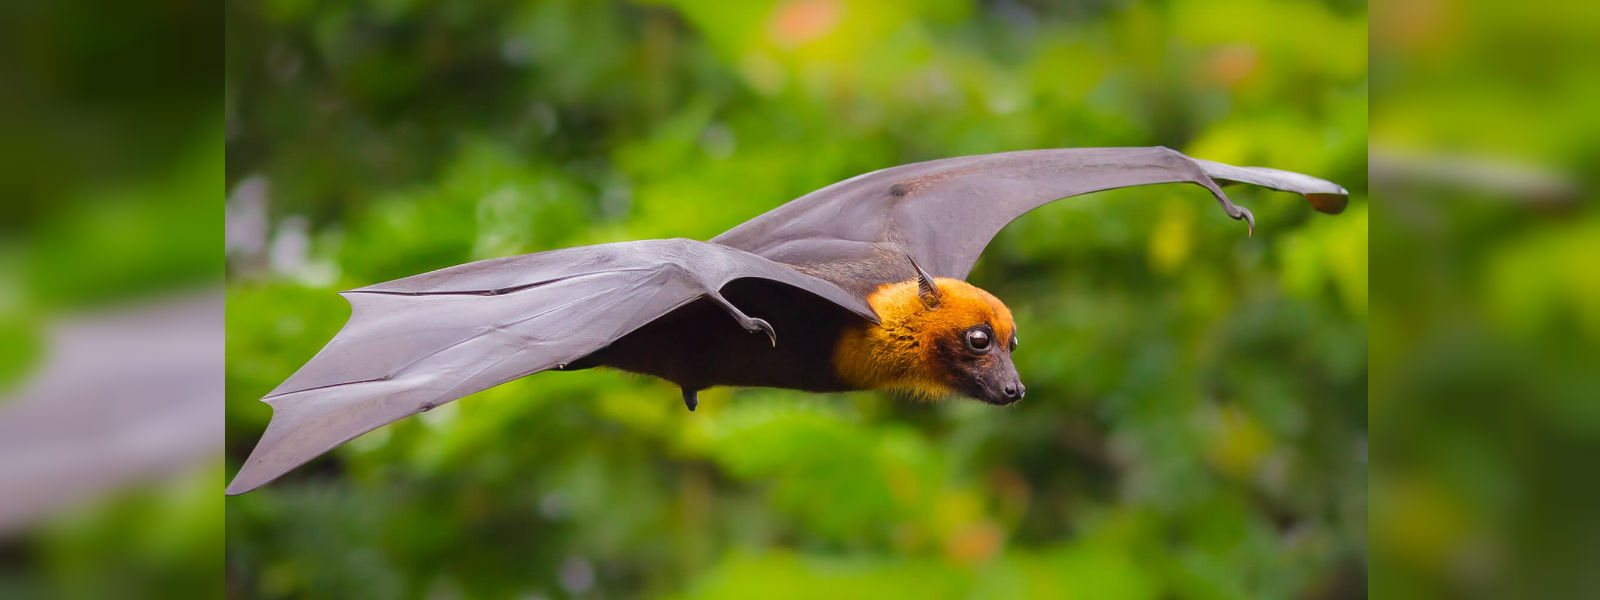 Study of bats finds that couples that eat together, mate together